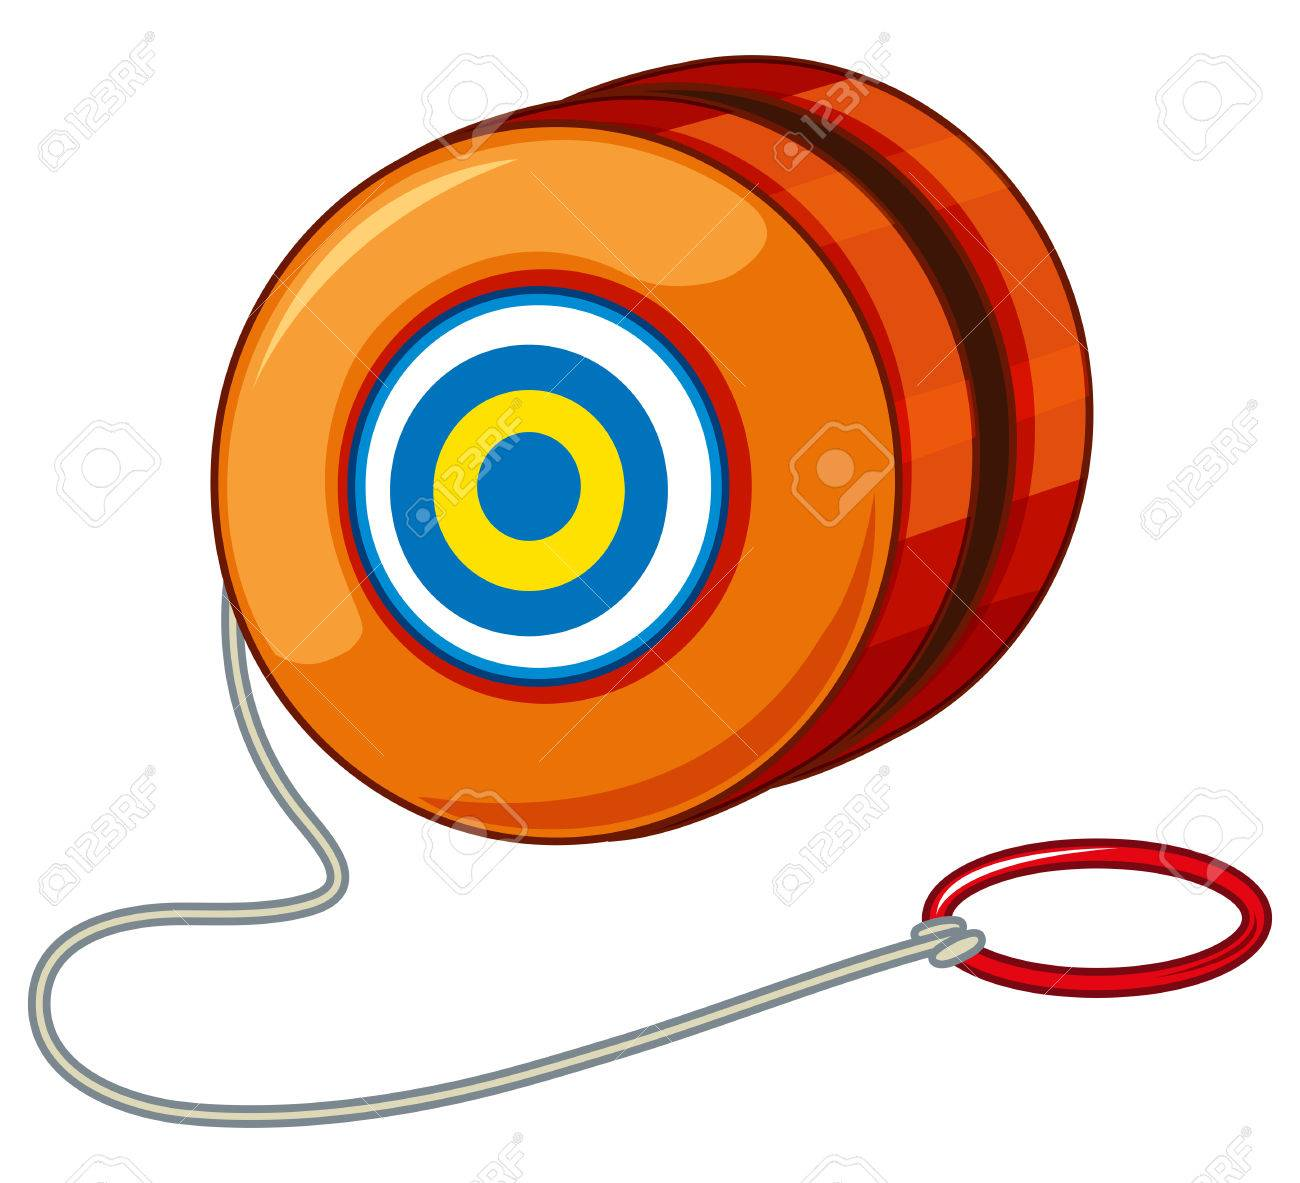 Orange yoyo with red ring illustration.